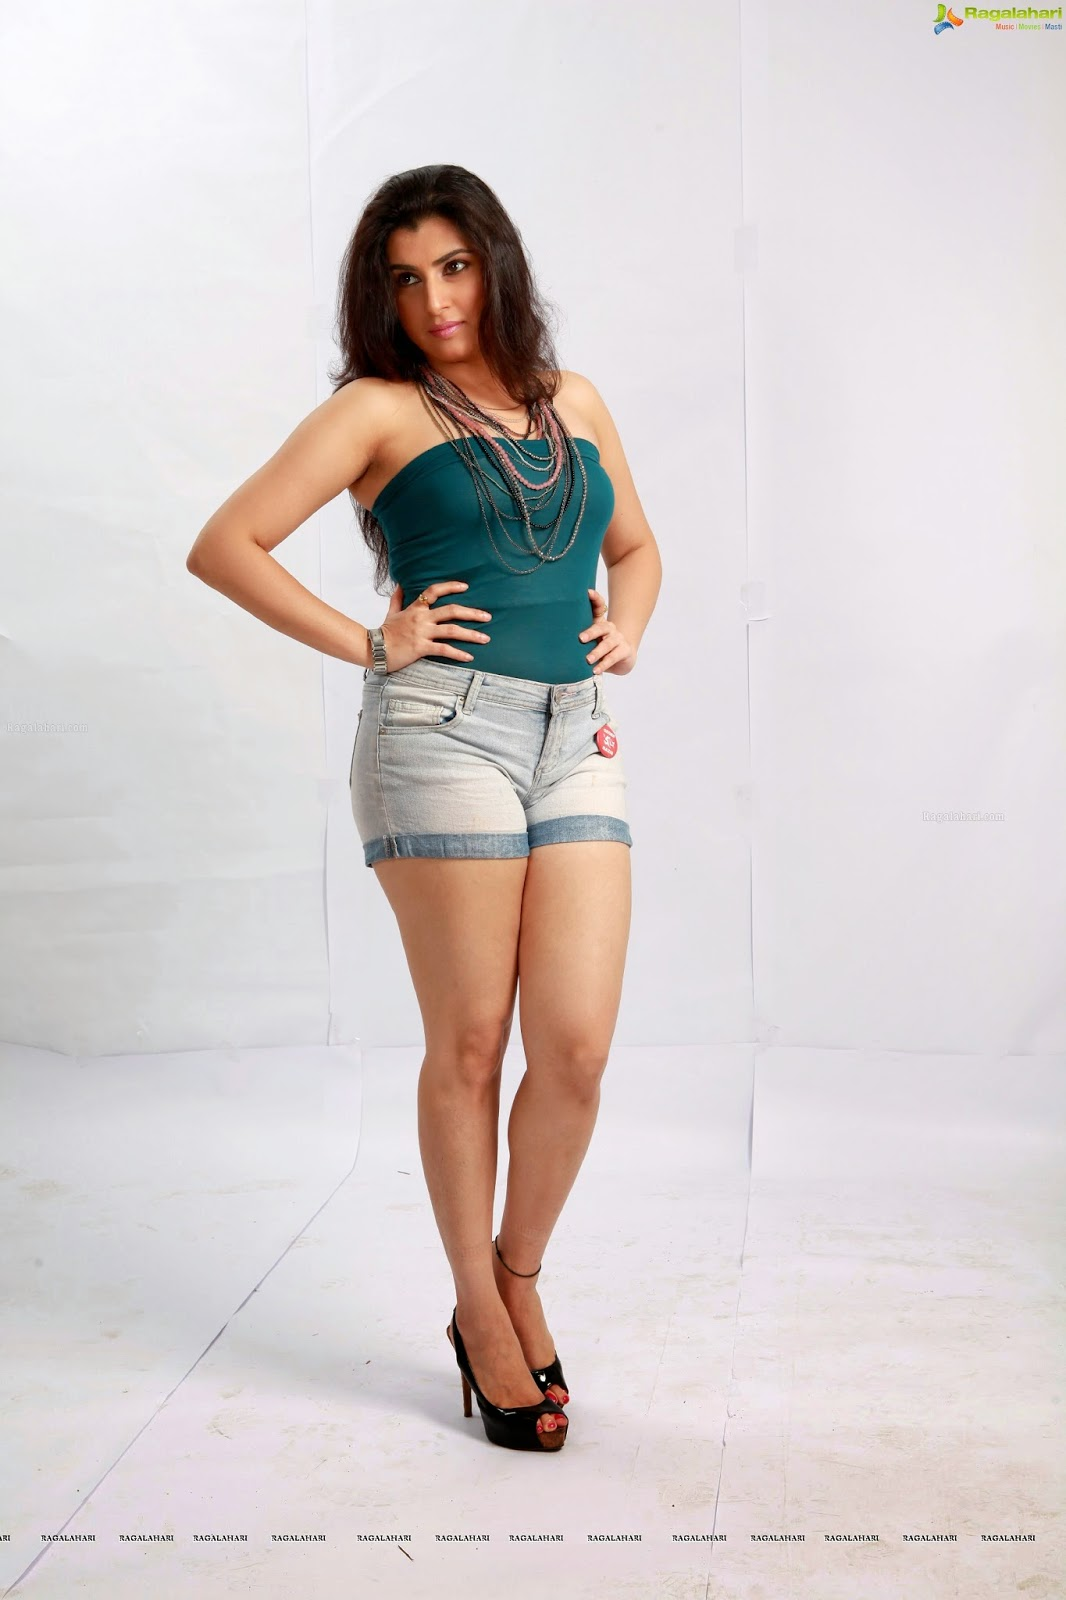 Beauty of Actress: Archana(Veda) Hot Boobs Show in ...